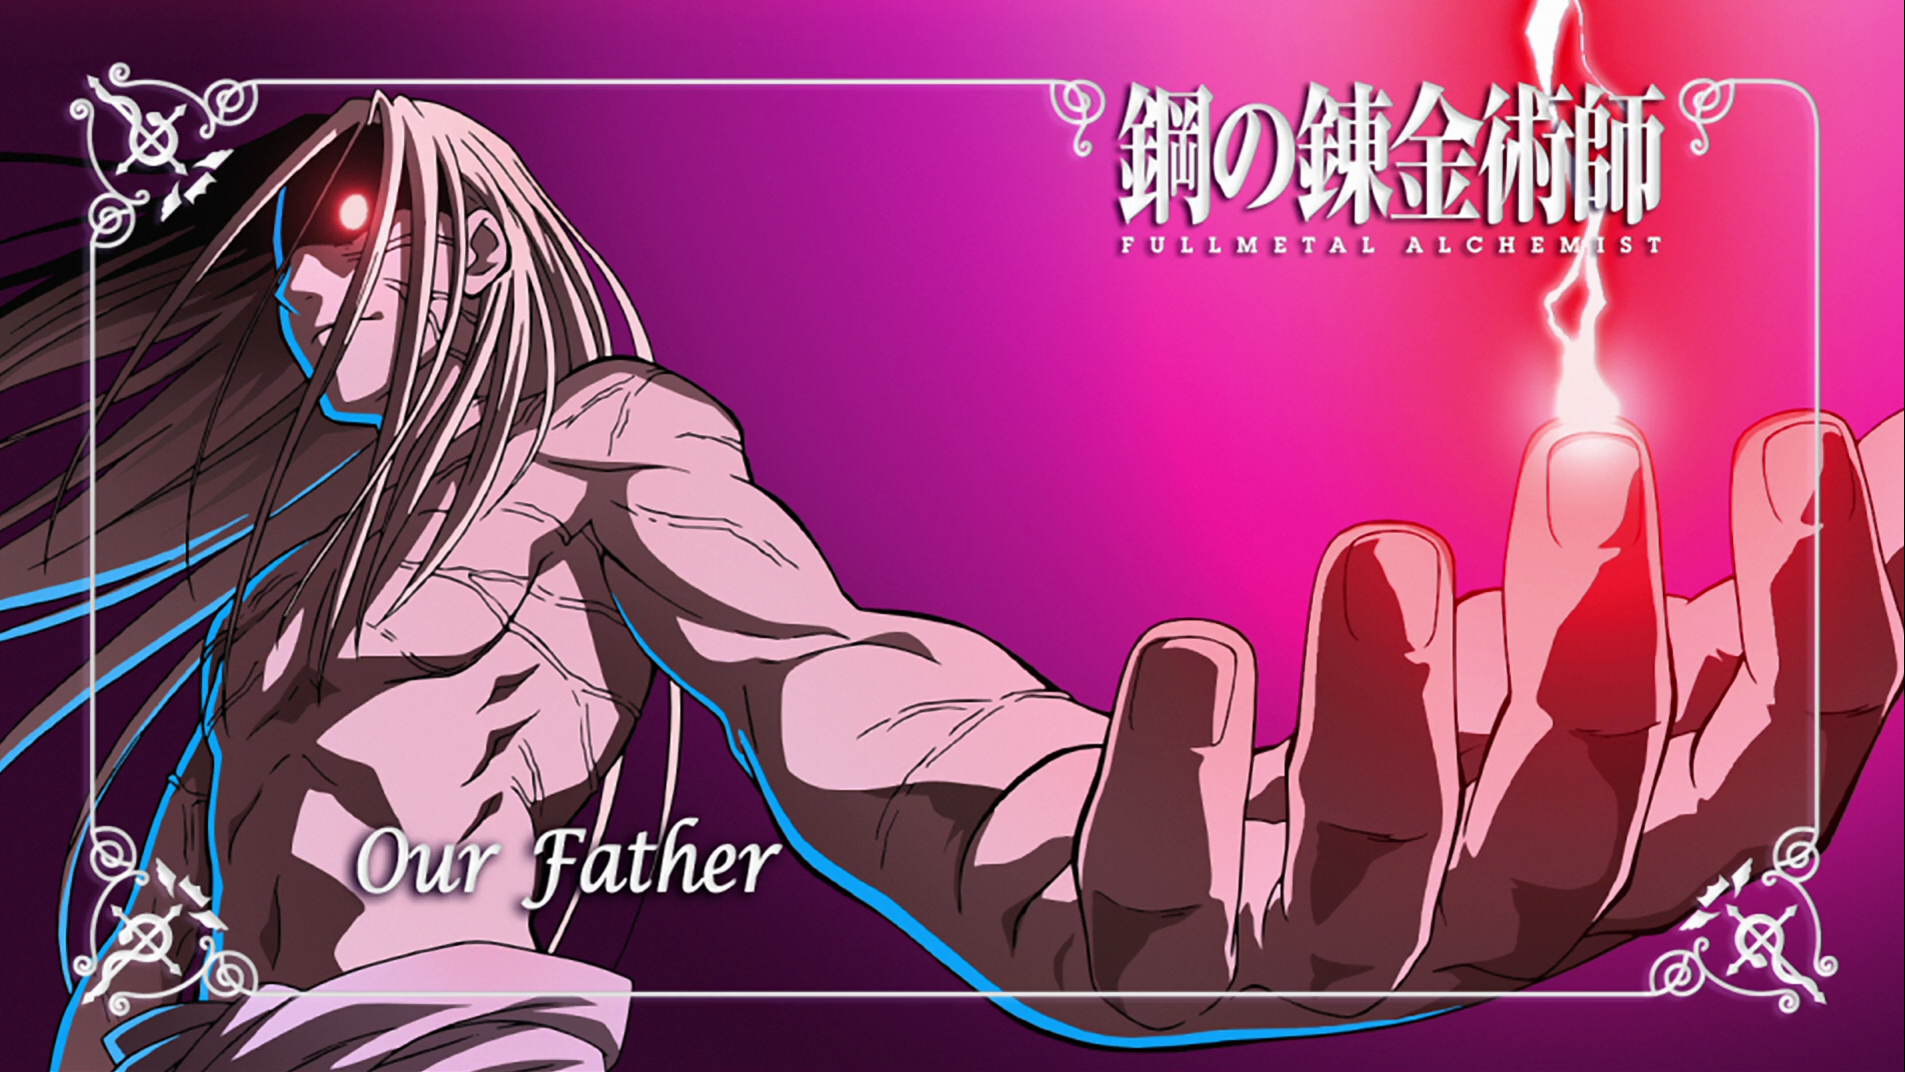 Anime - FullMetal Alchemist  Wallpaper